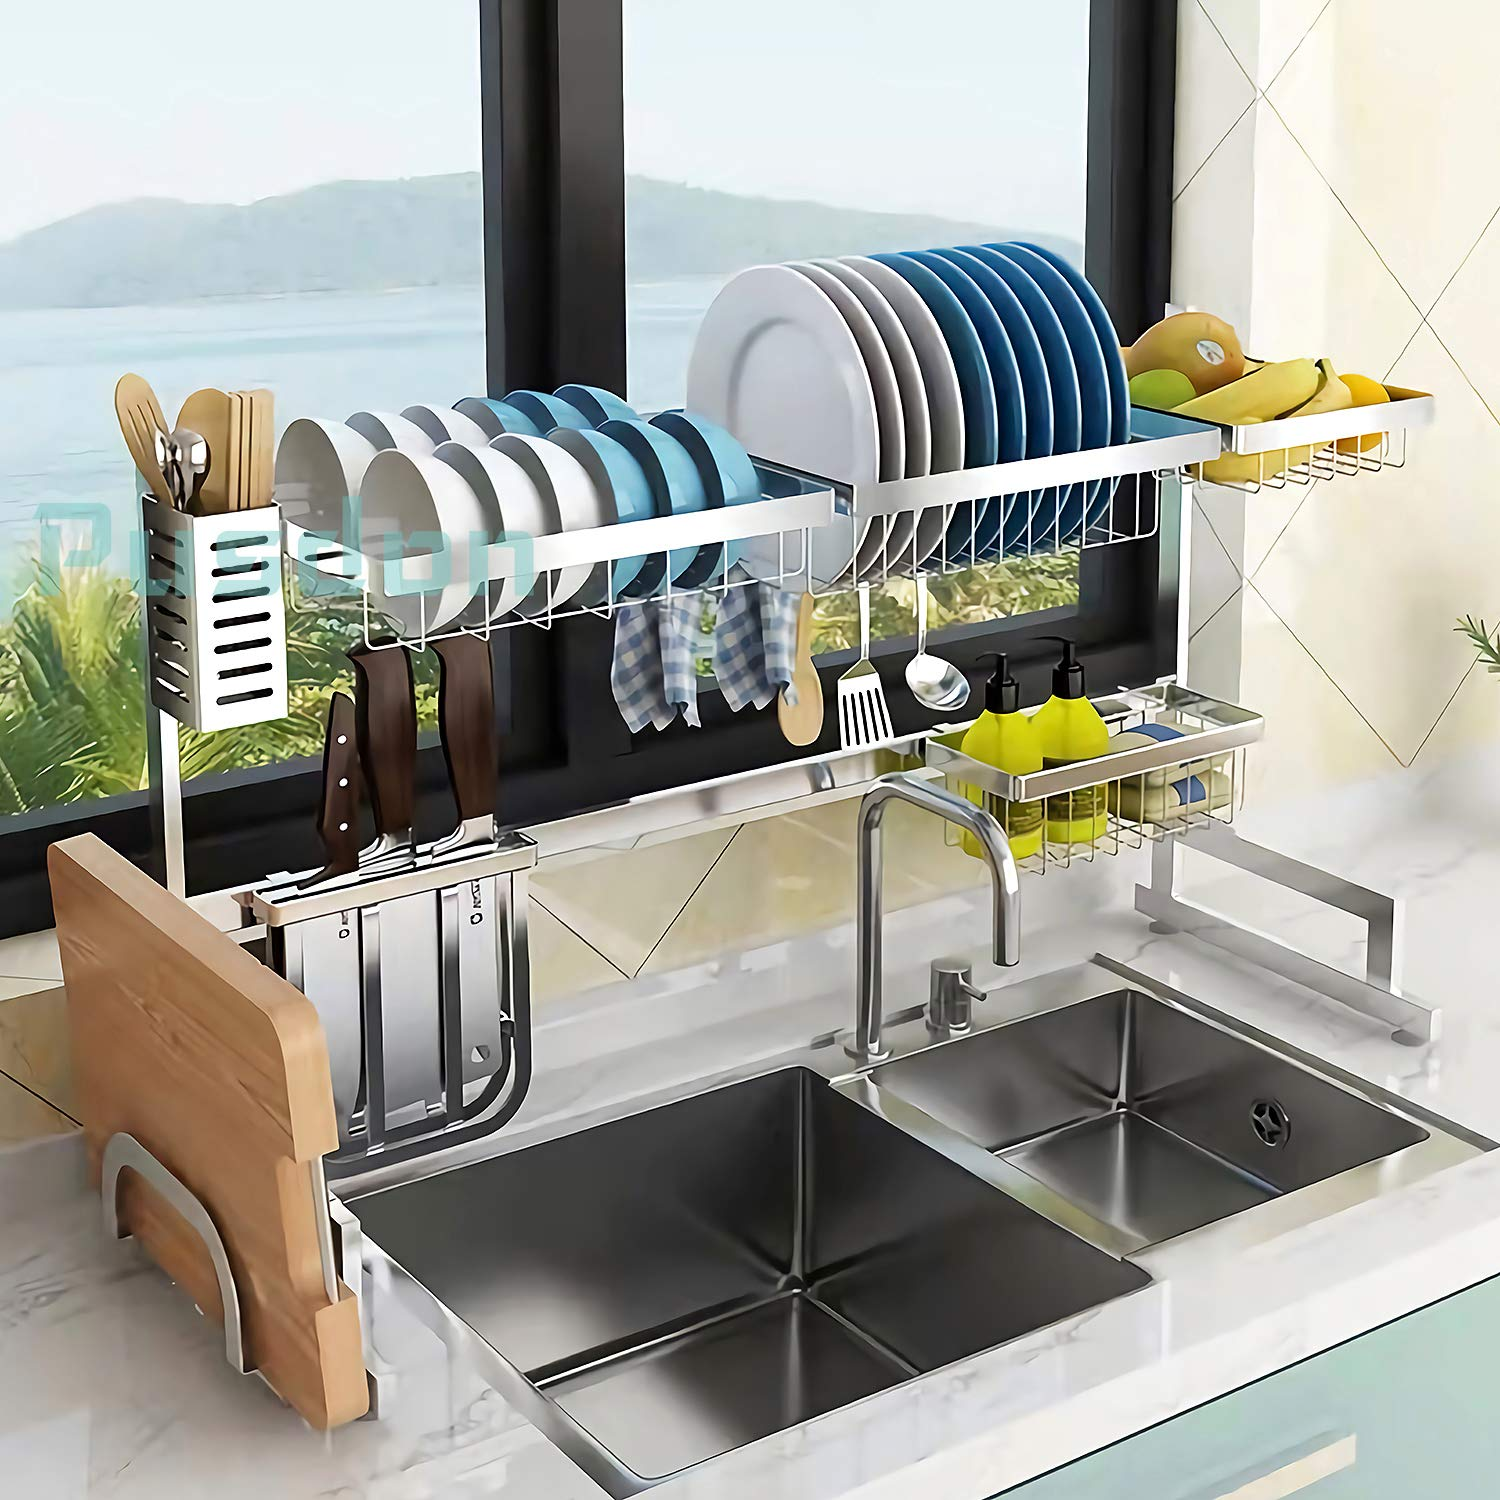 Dish Drying Rack Over Sink, Drainer Shelf for Kitchen Supplies Storage Counter Organizer Utensils Holder Stainless Steel Display- Kitchen Space Save Must Have (Sink size ≤ 32 1/2 inch, silver)